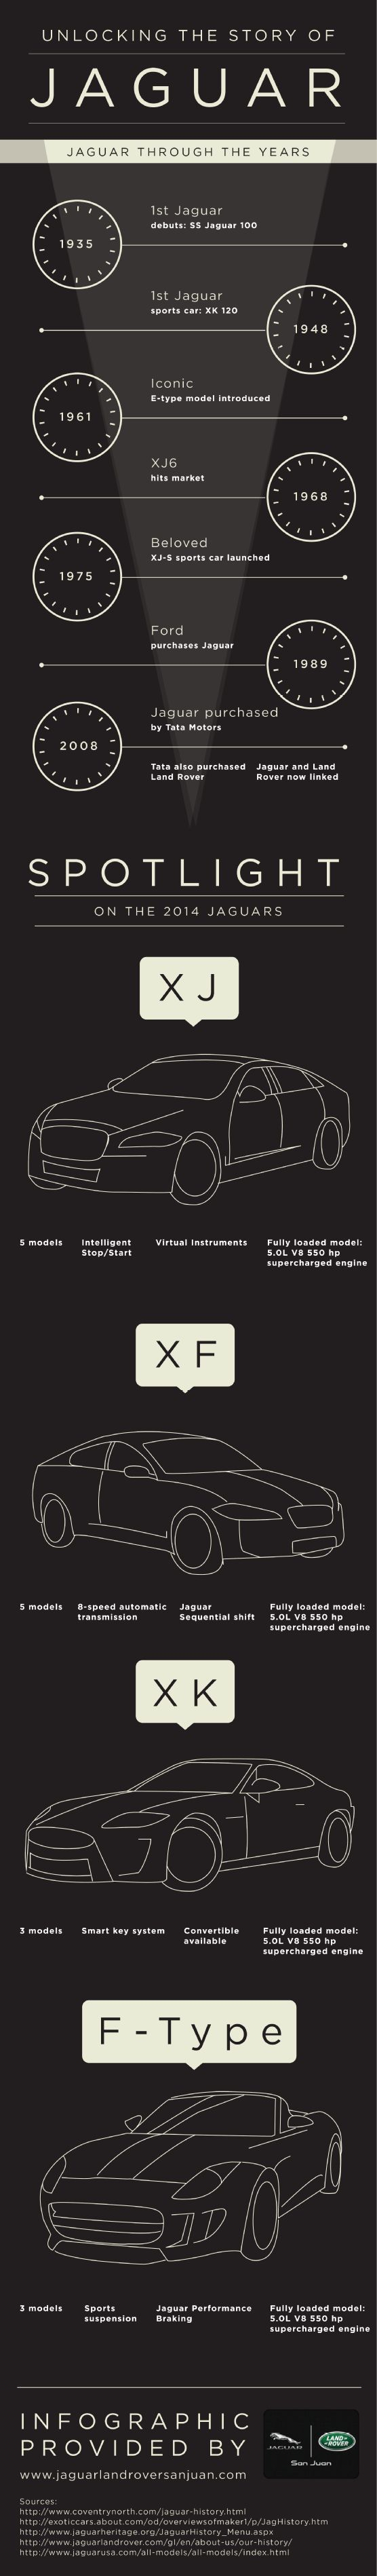 269 best Car and Automotive Infographics images on Pinterest